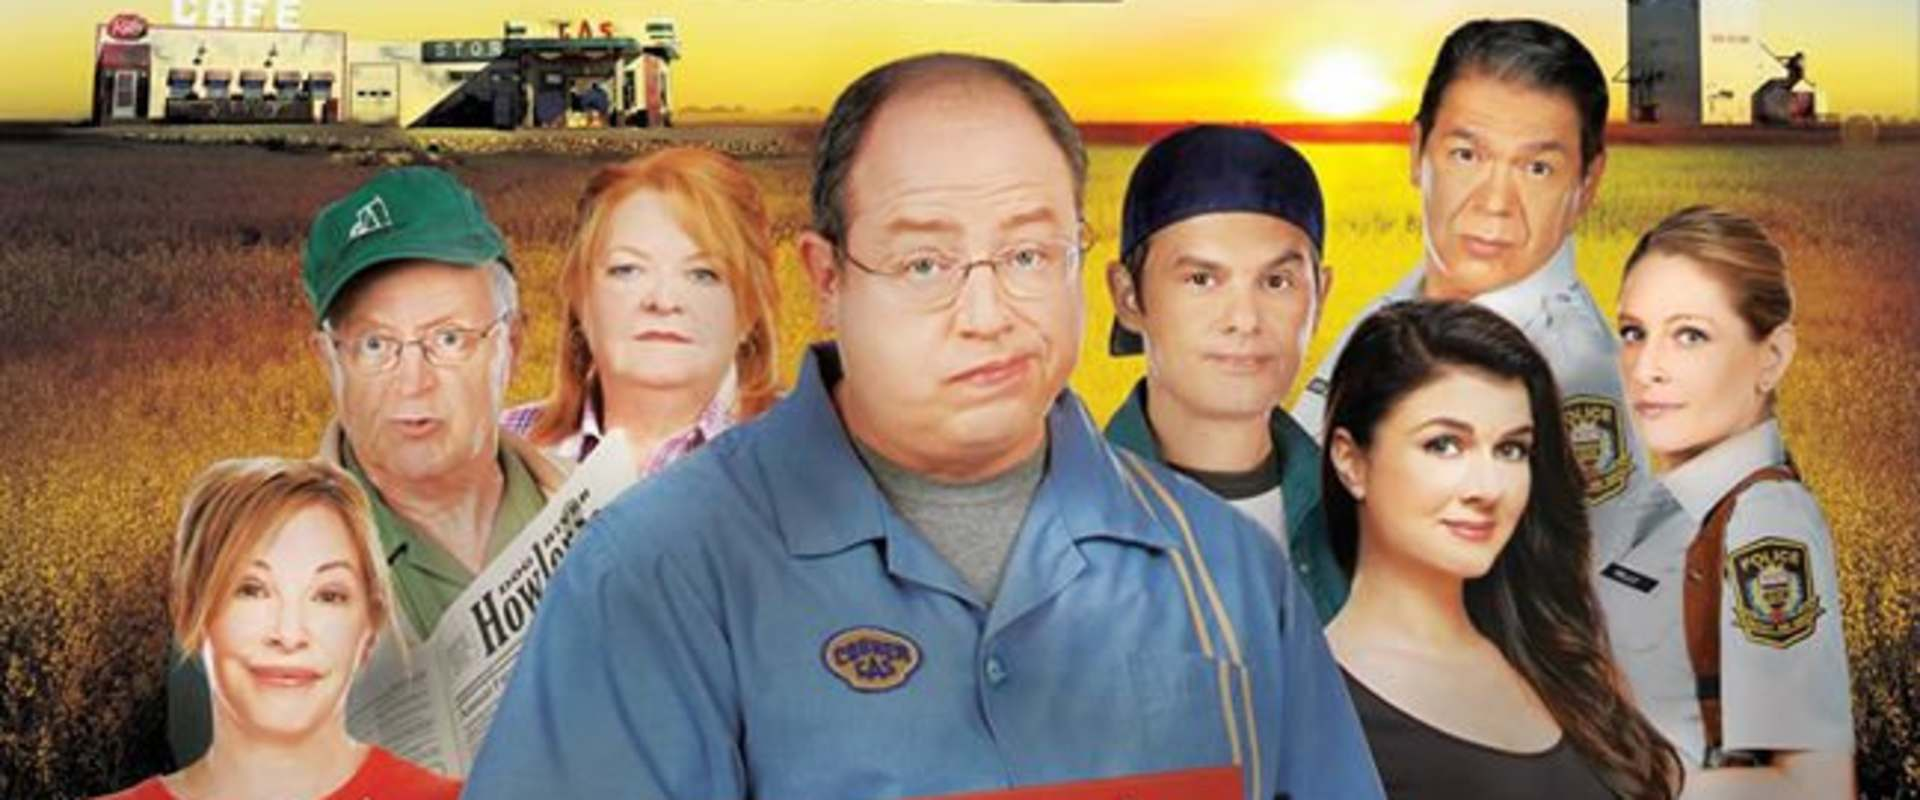 Corner Gas: The Movie background 1